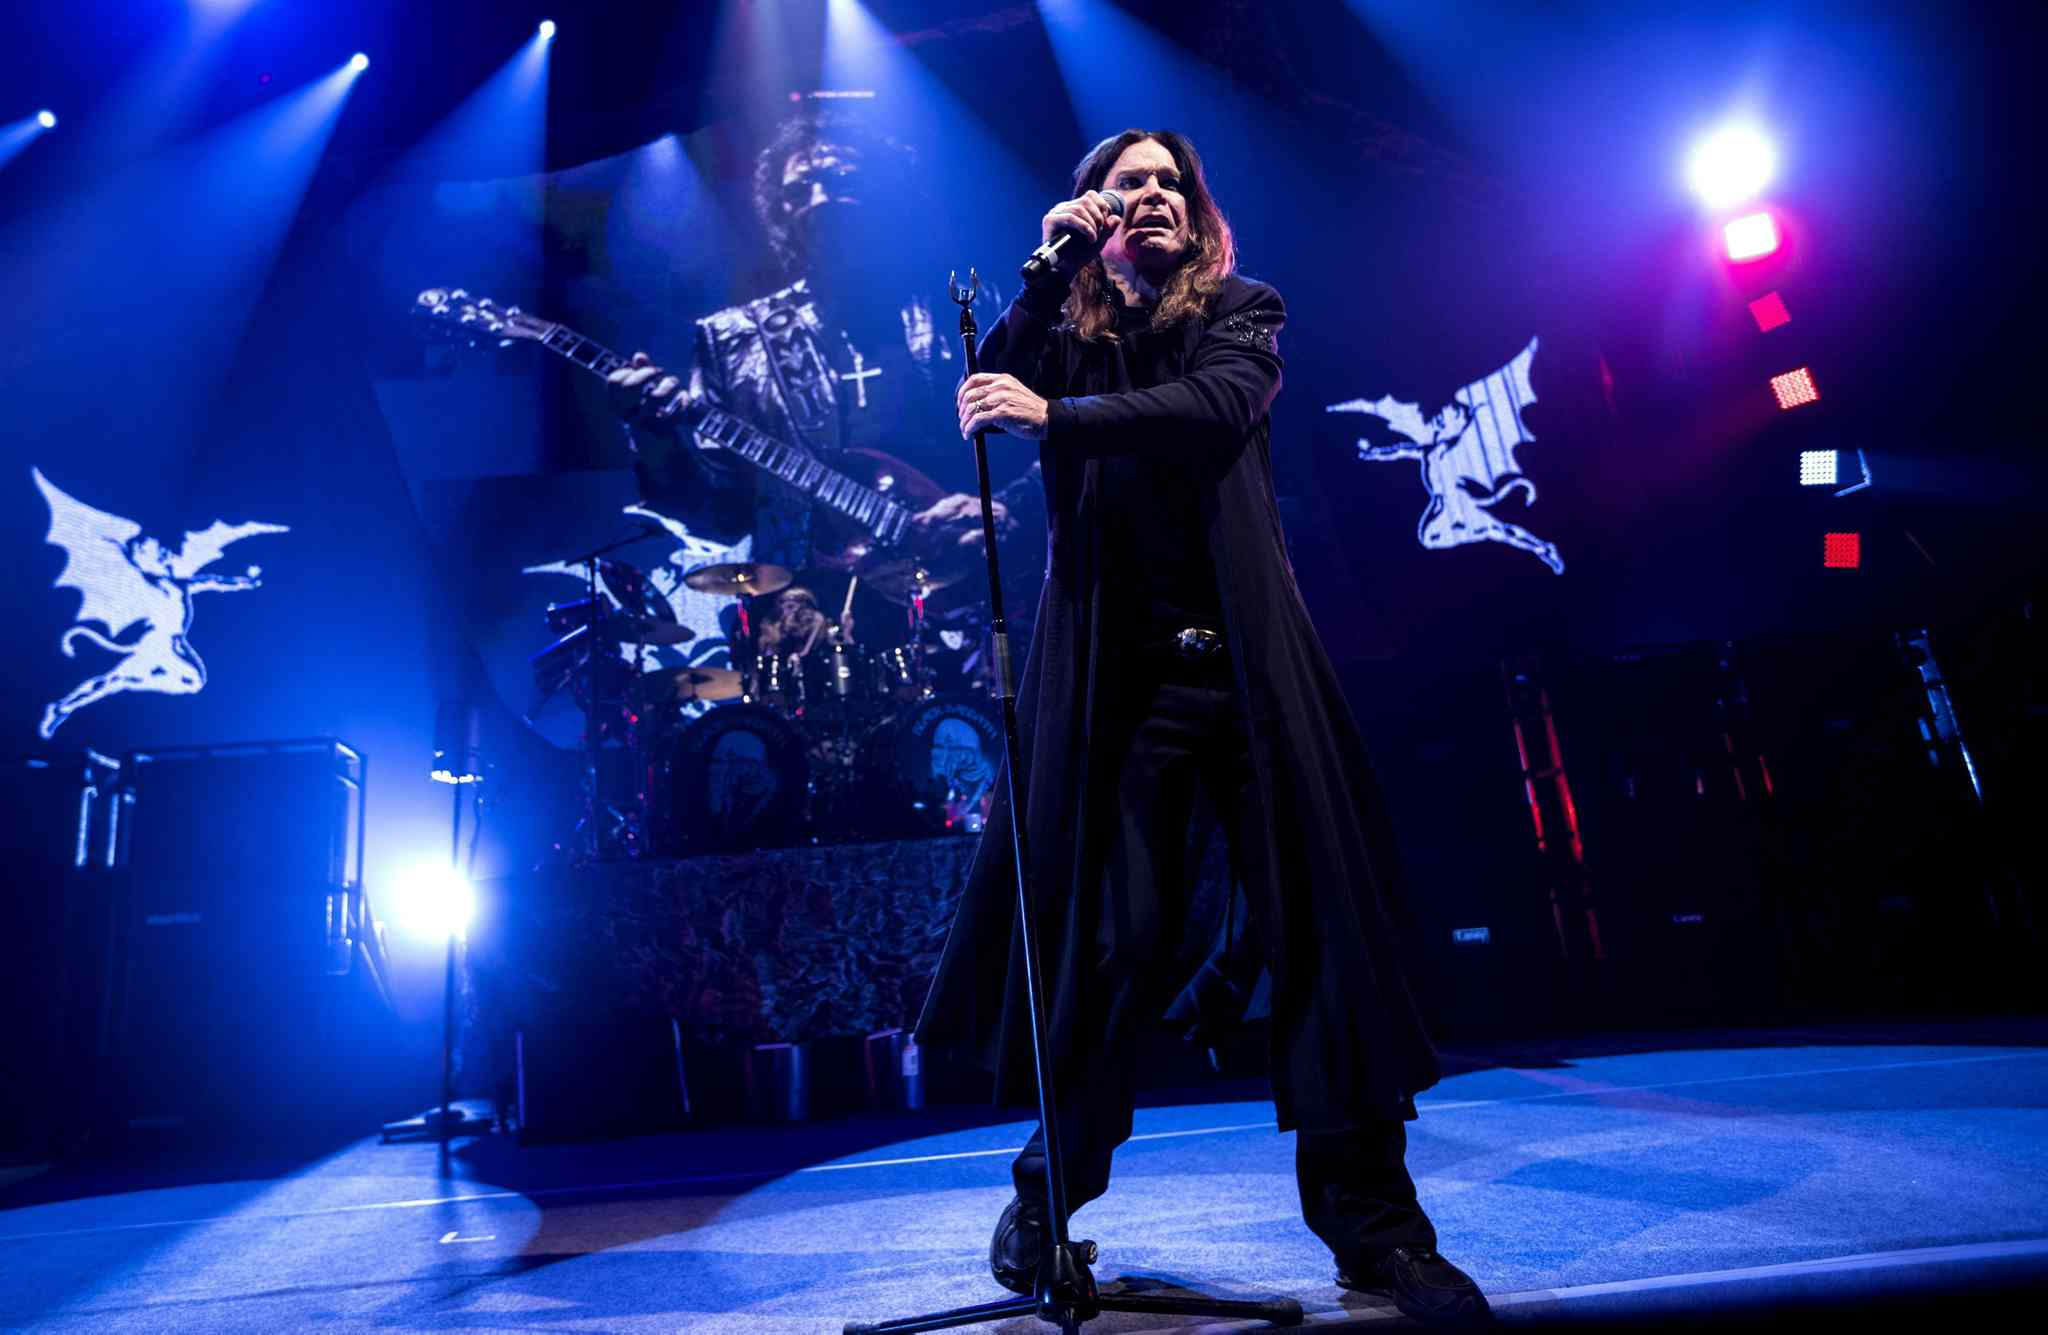 Black Sabbath singer Ozzy Osbourne performs with guitarist Tony Iommi, seen on screen behind, during a concert earlier in the tour in Denmark. Winnipeg fans at Wednesday's show got to see that while Osbourne may have mellowed in his age, he's a commanding presence who still gives all he's got.